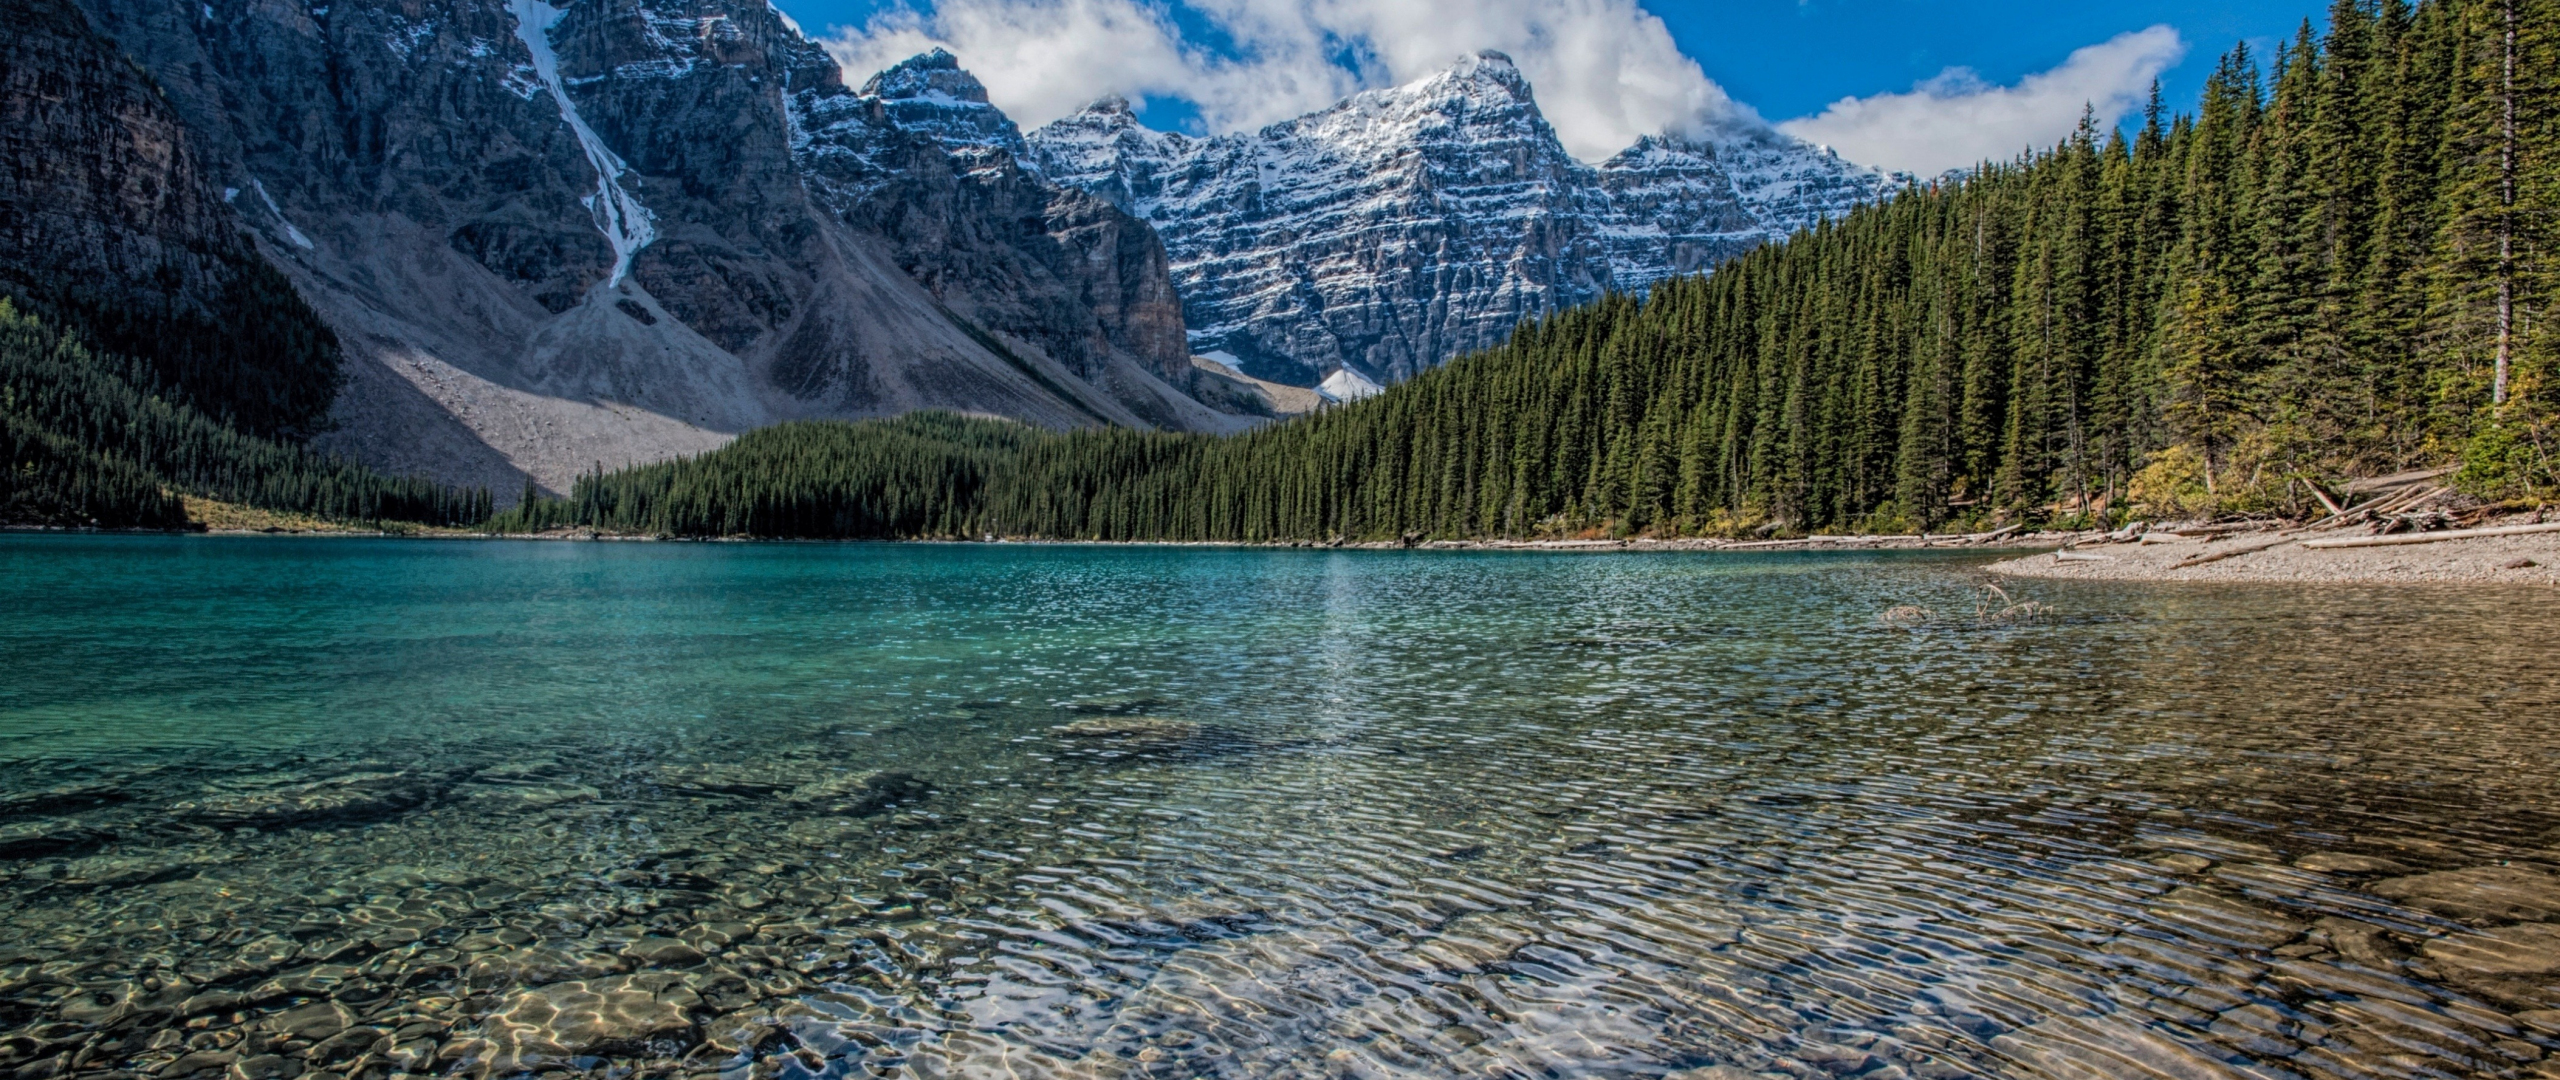 Download 2560x1080 wallpaper clean lake mountains range trees nature dual wide widescreen - 1080 x 1080 background ...